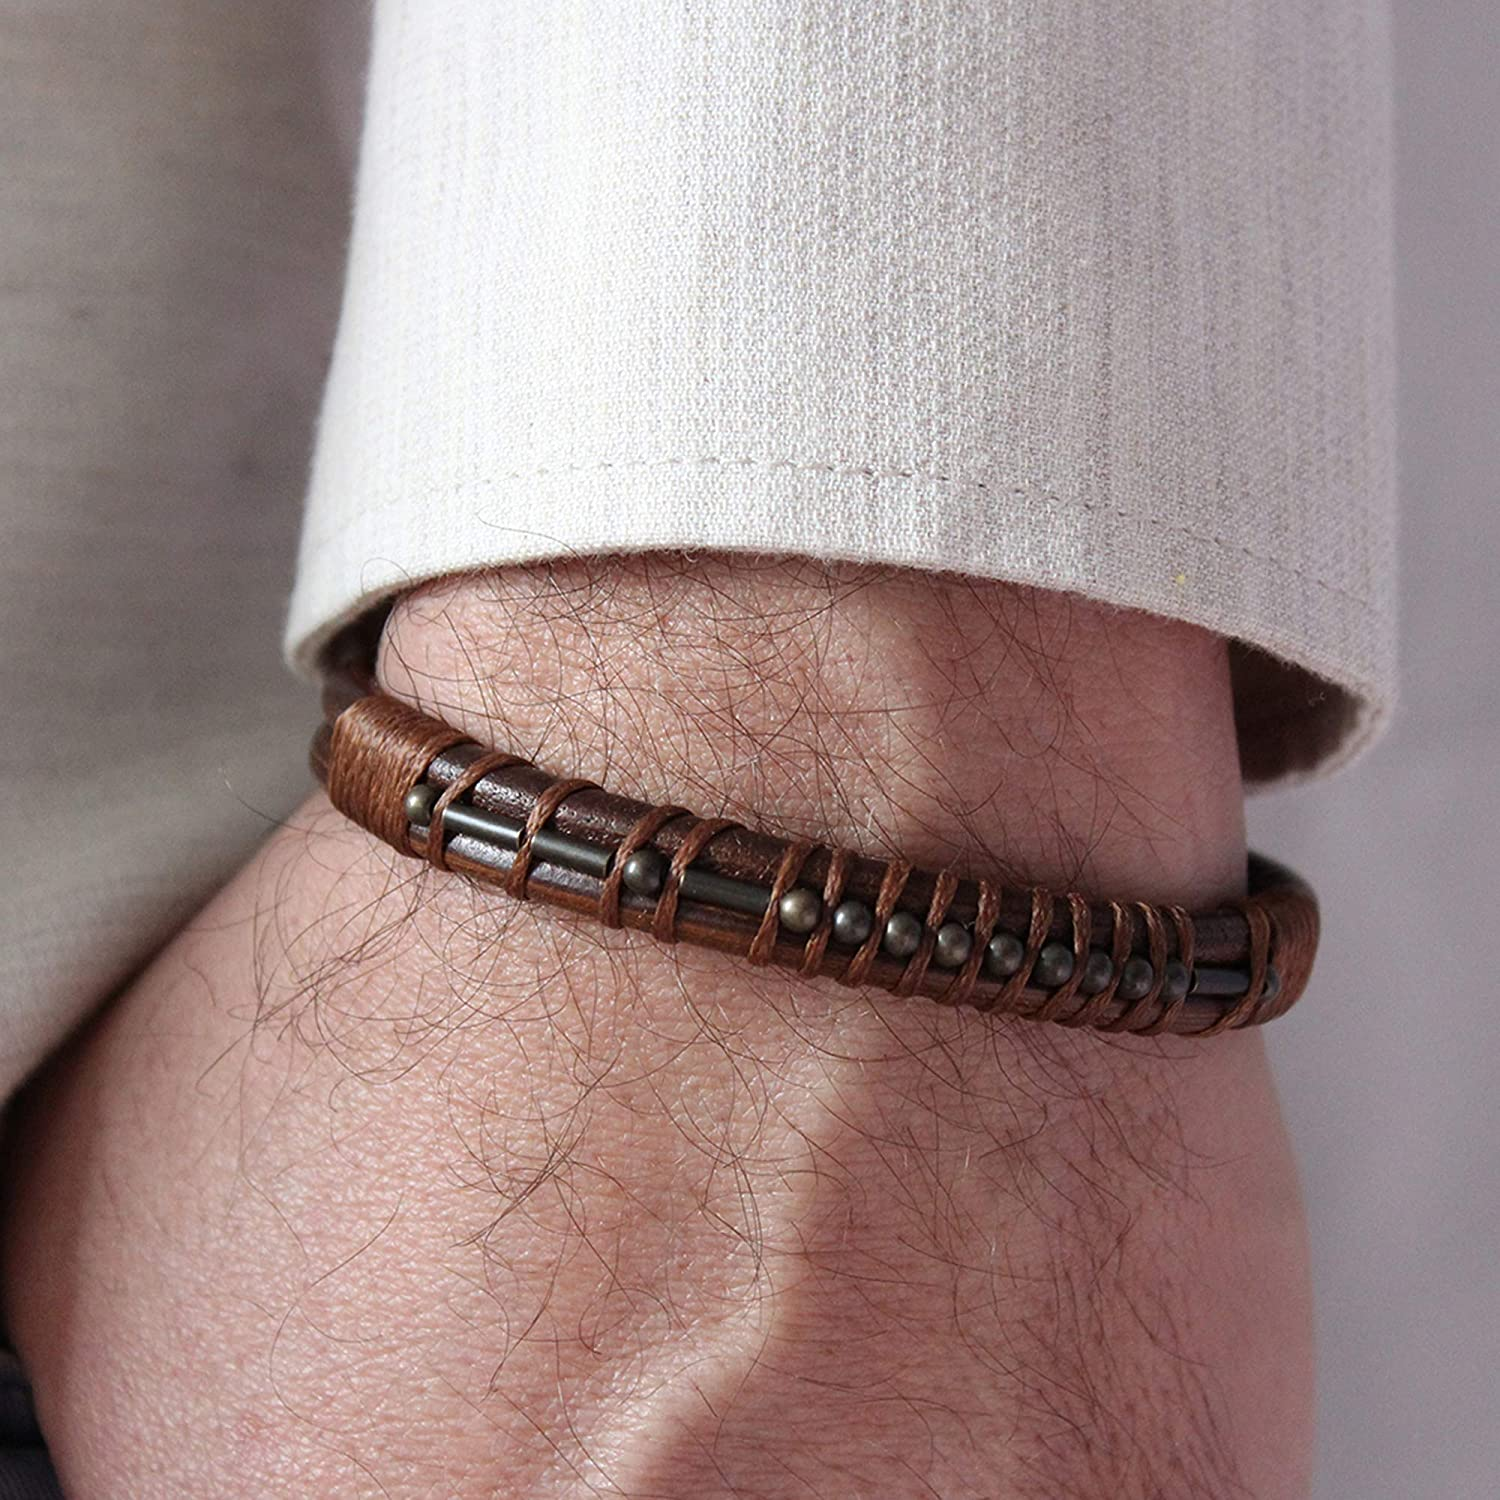 Morse Code Bracelet Mens Leather Bracelet Personalized Anniversary Gifts for Him Memorial Gift Boyfriend Dad Son Christmas Gift for Him